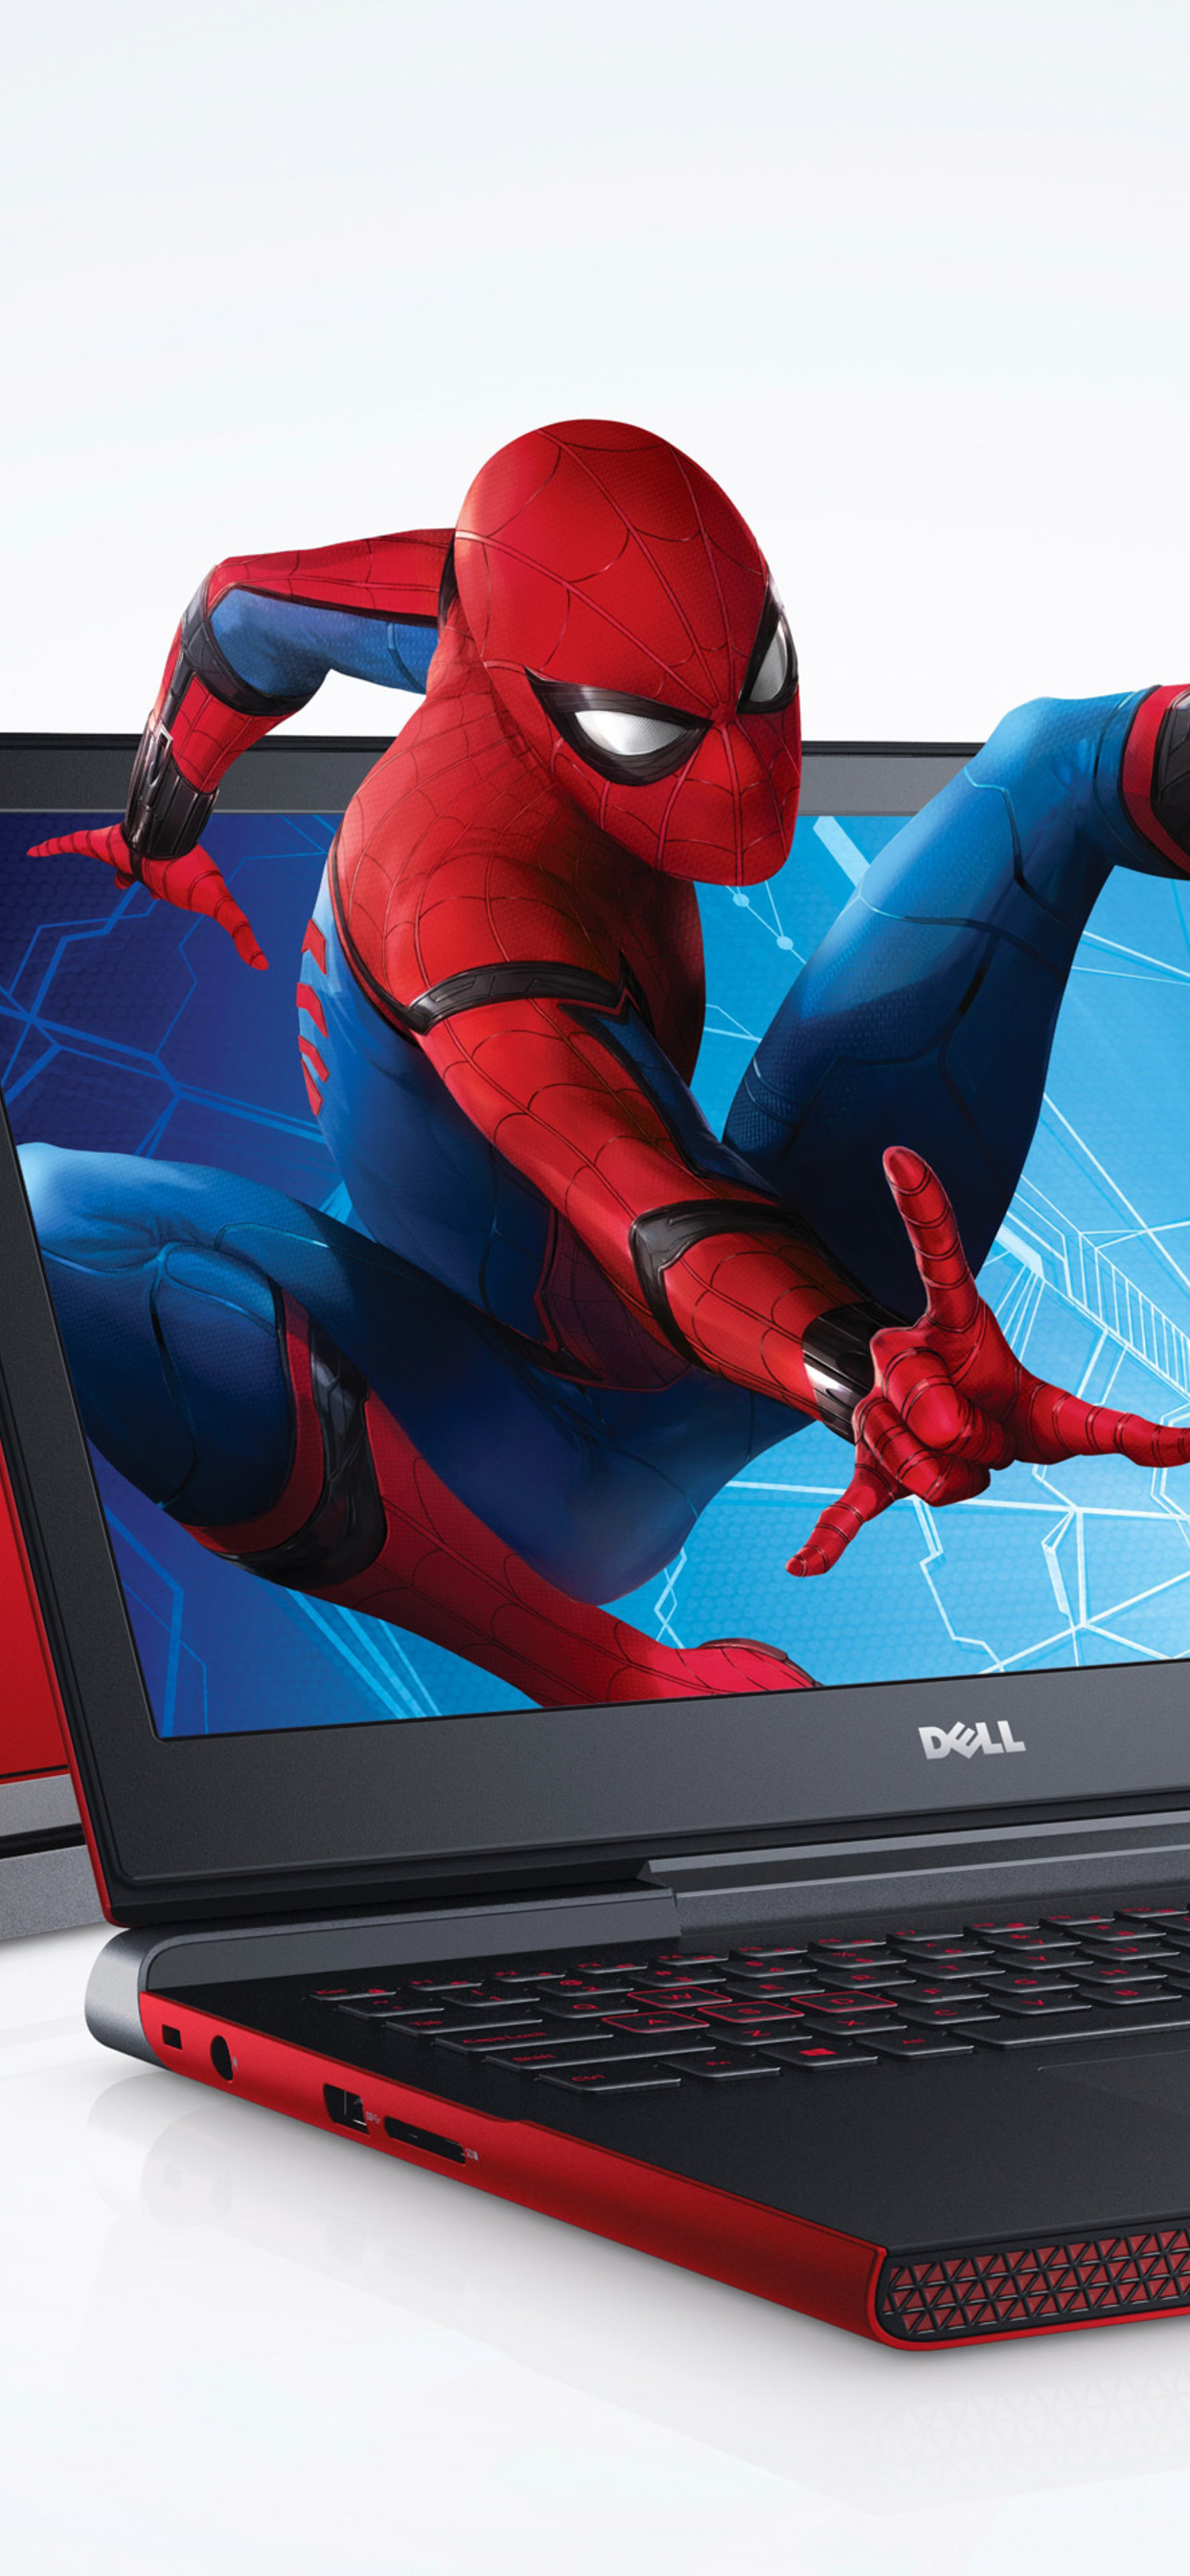 dell-spiderman-edition-inspiron-15-7000-qhd.jpg